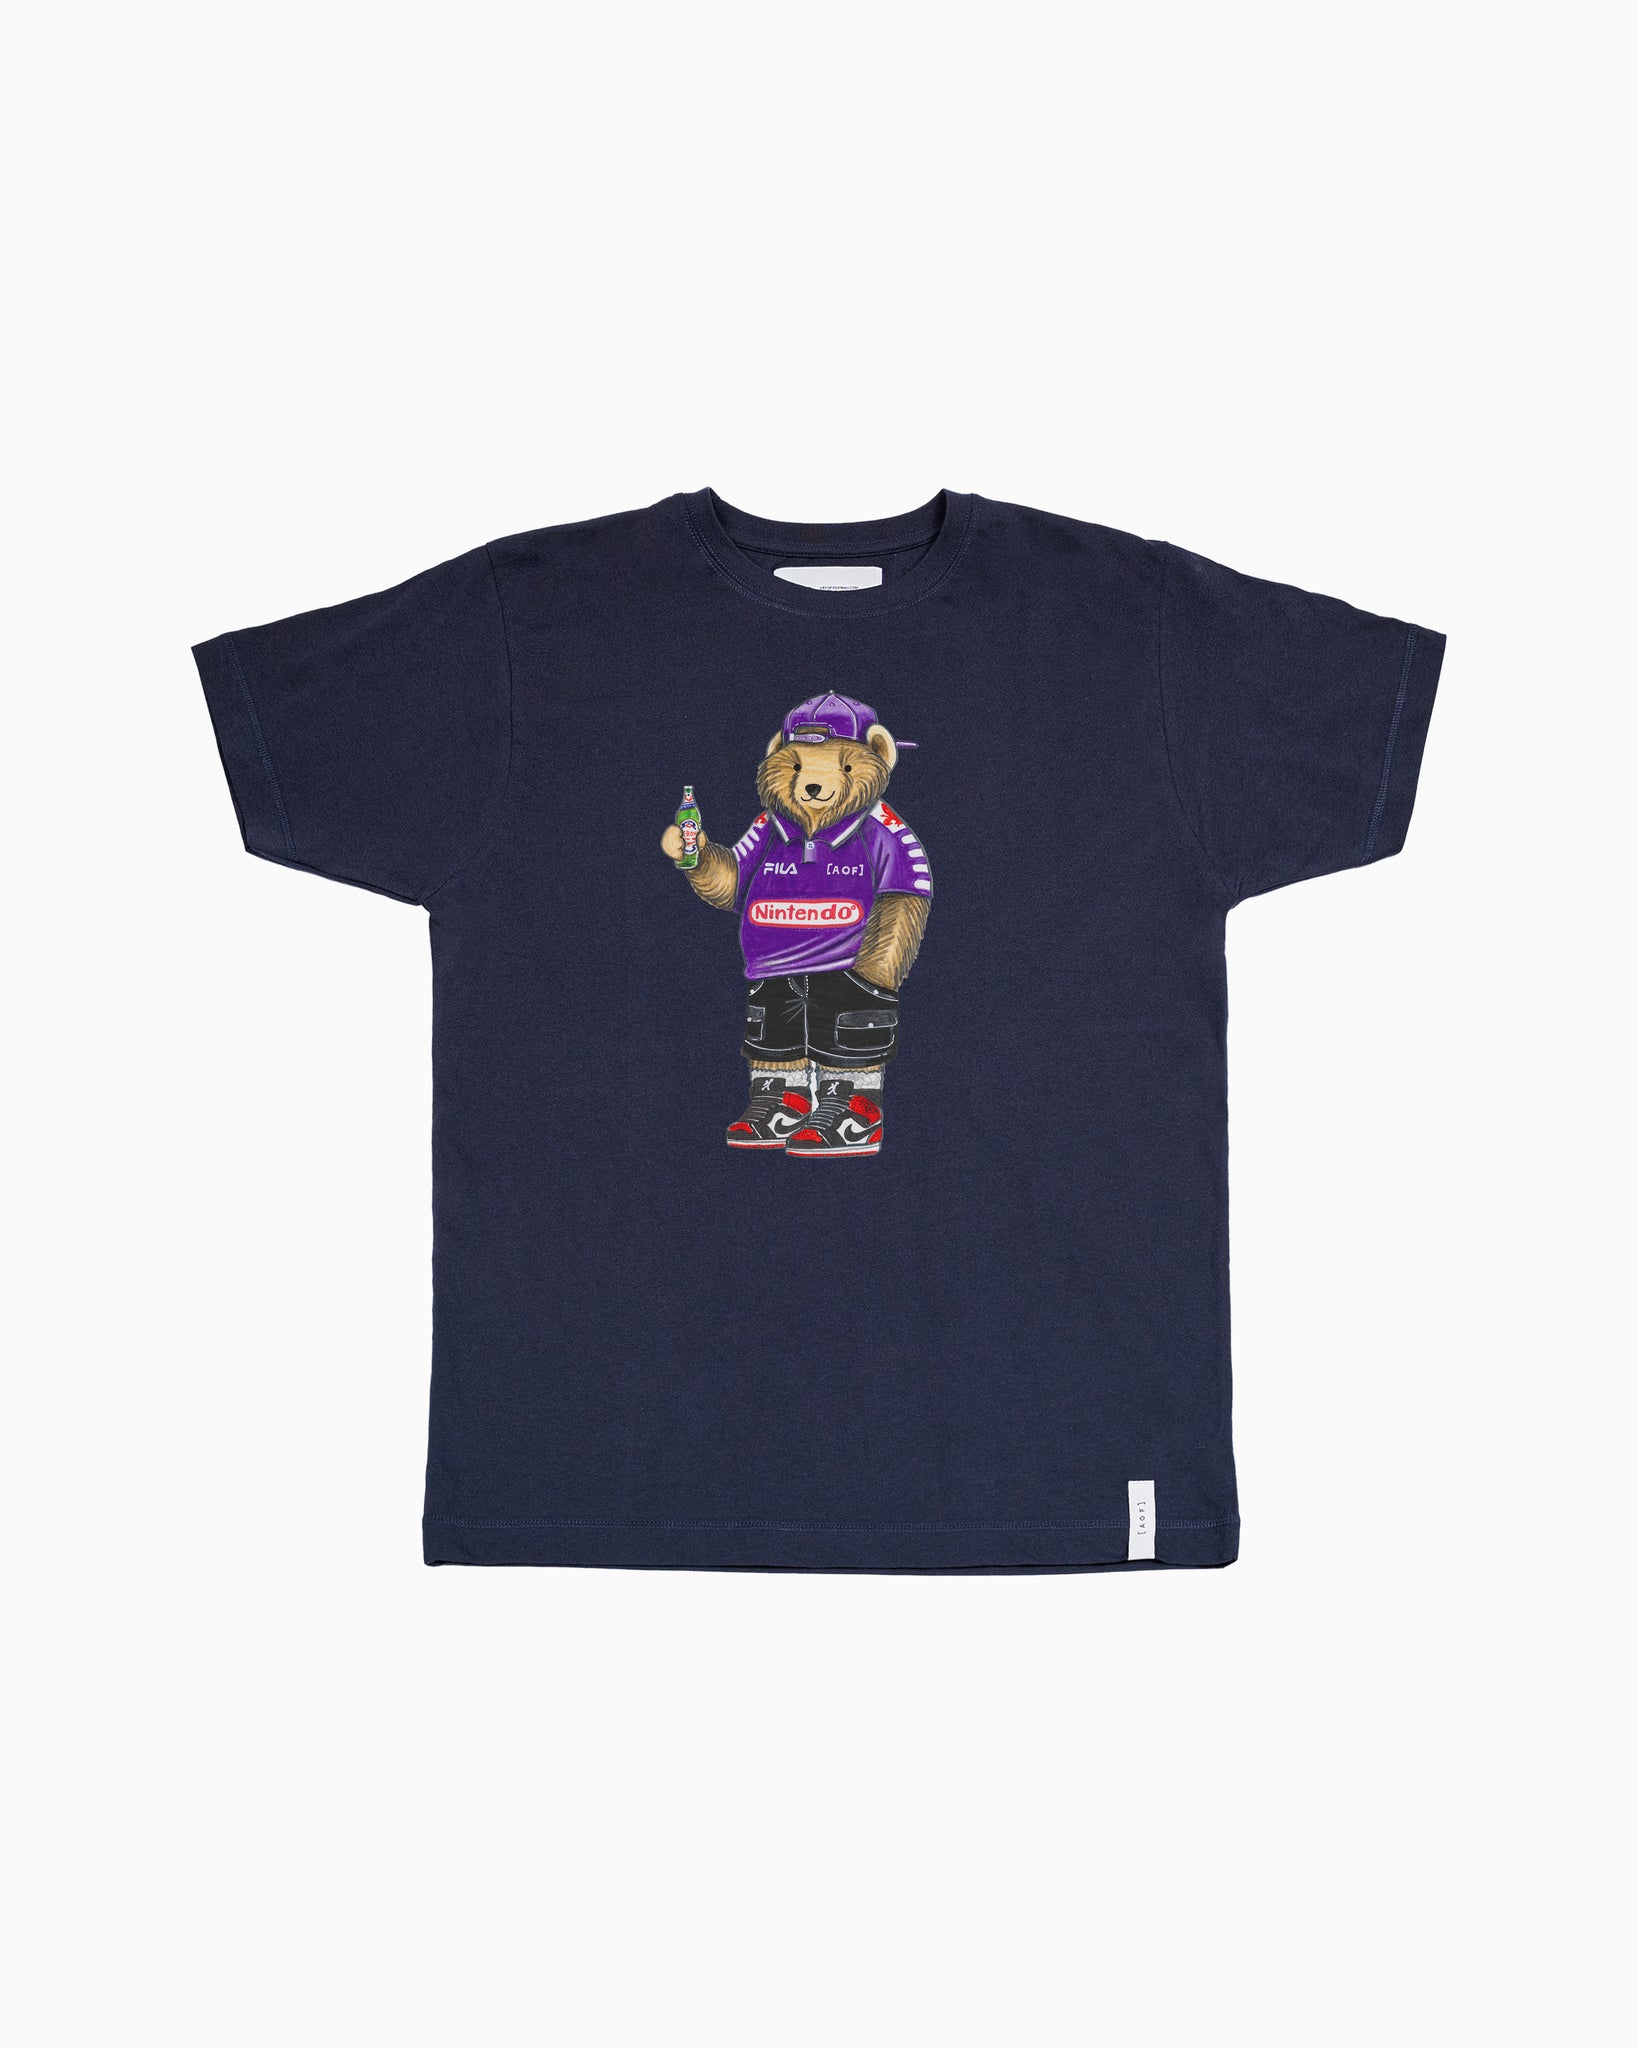 Fiorentina Pickles - Tee or Sweat